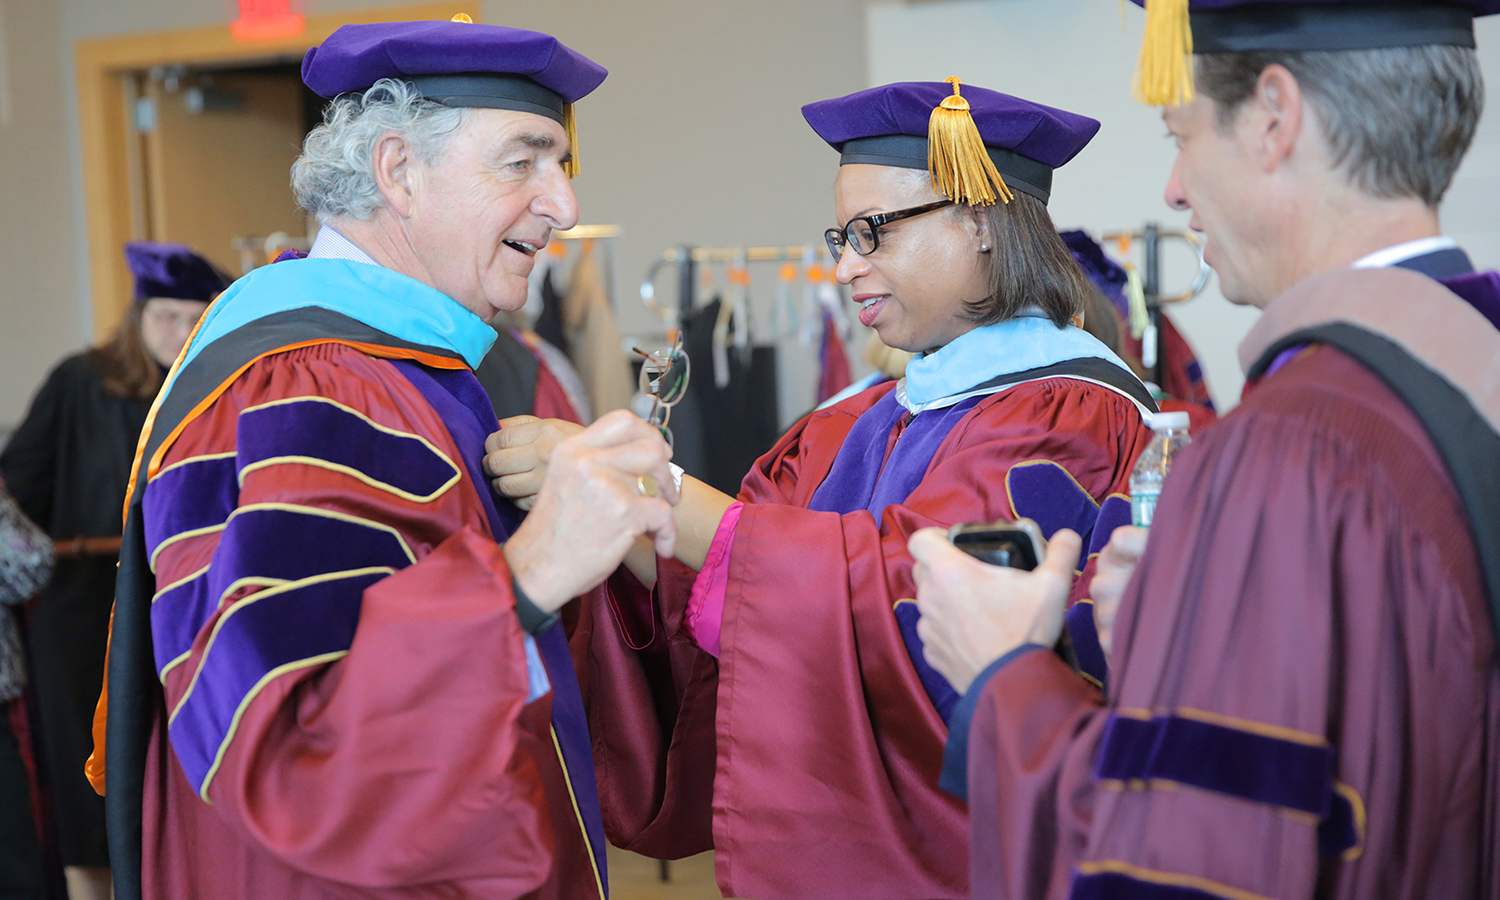 HWS Trustee Linda Arrington helps Chair of the Board of Trustees Thomas S. Bozzuto '68 during robing for Sunday's Commencement ceremony.